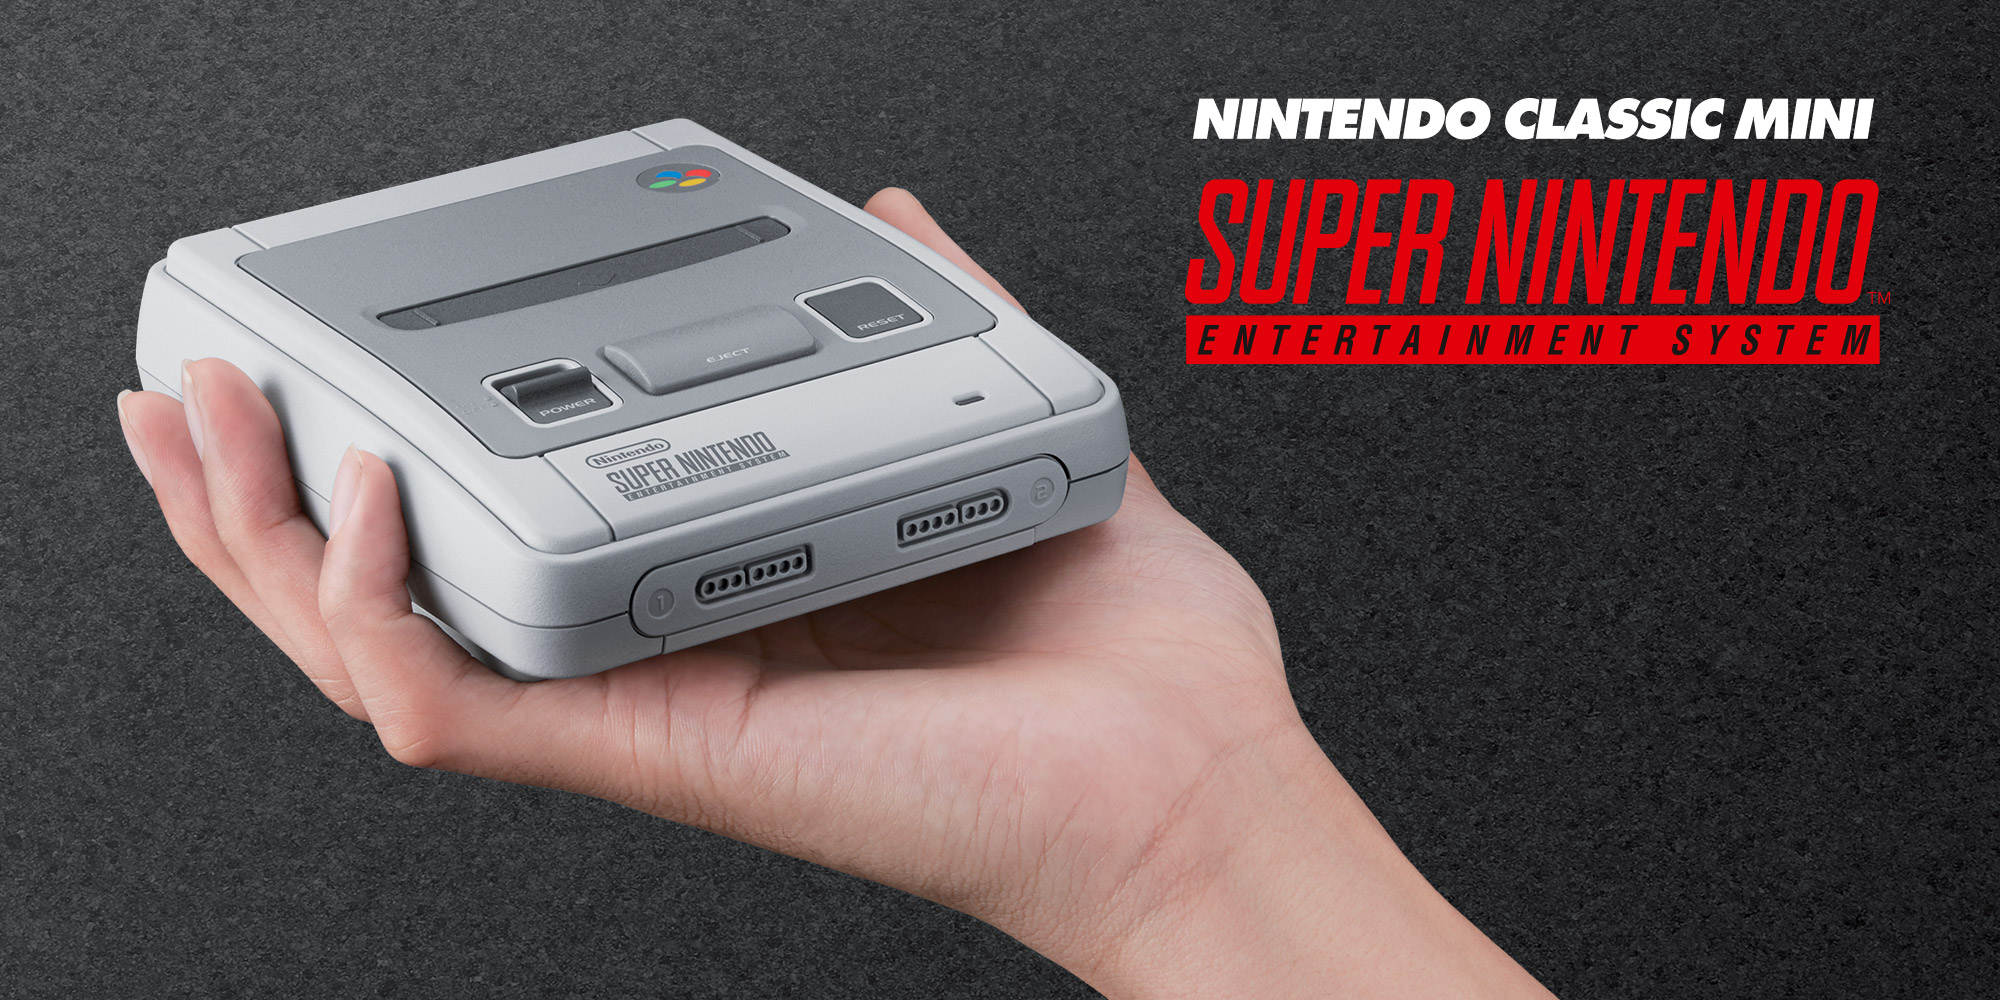 A Nintendo Classic Mini: Super Nintendo Entertainment System chega a Portugal no dia 29 de setembro!